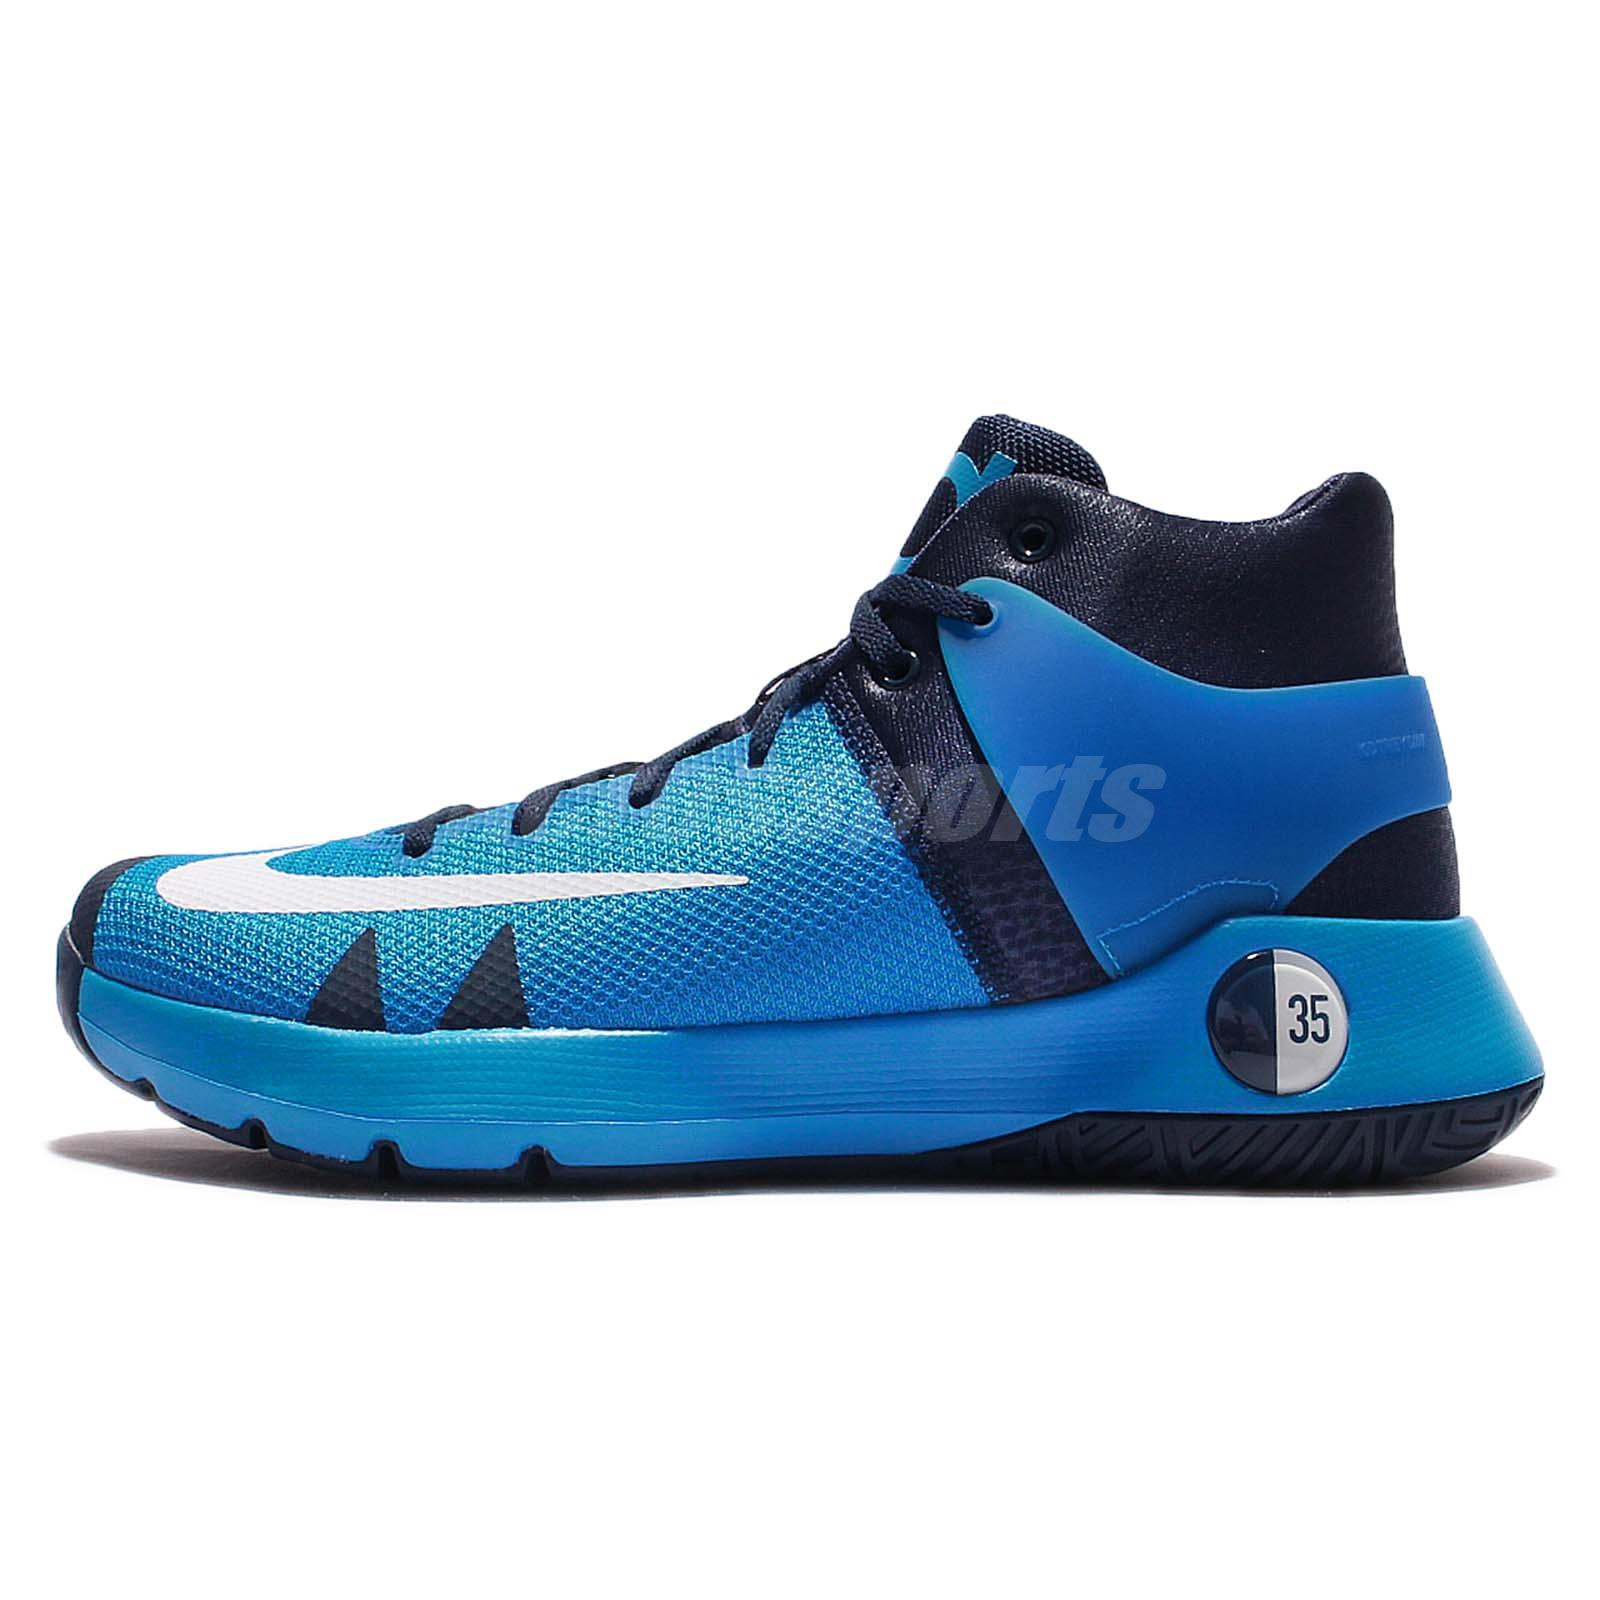 Kevin Durant Shoes Trey